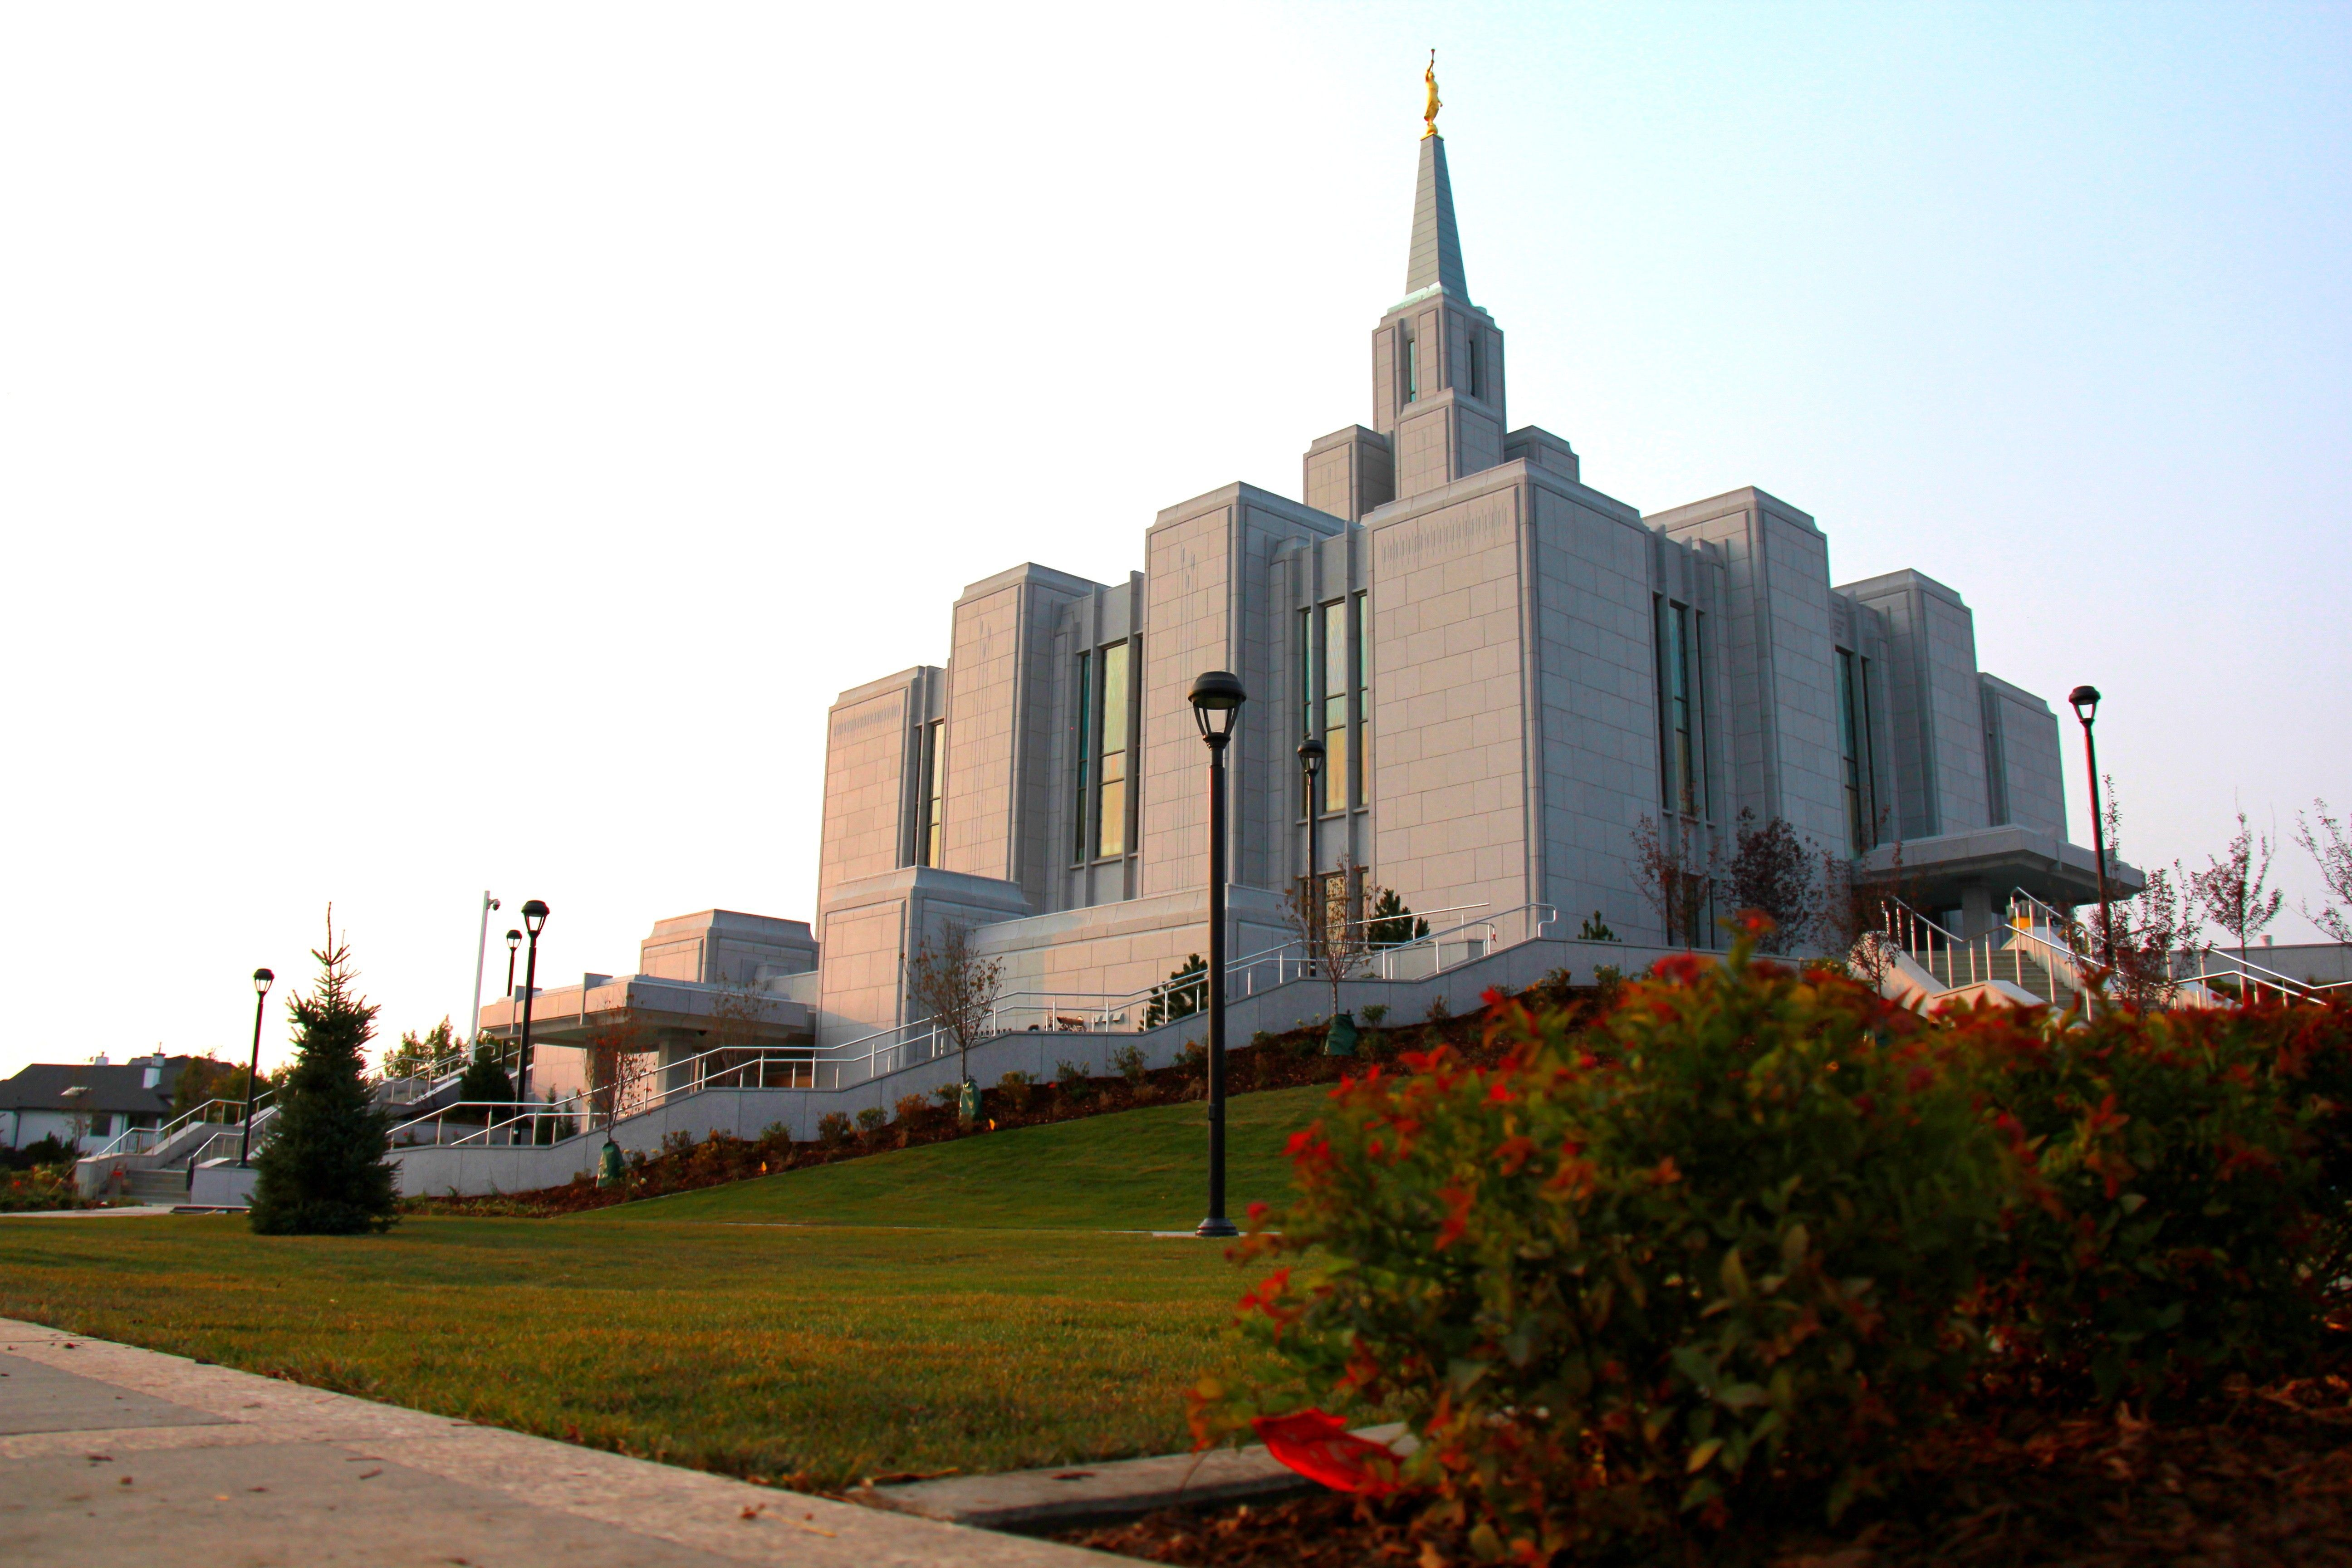 A view of the Calgary Alberta Temple in the evening from the temple grounds.